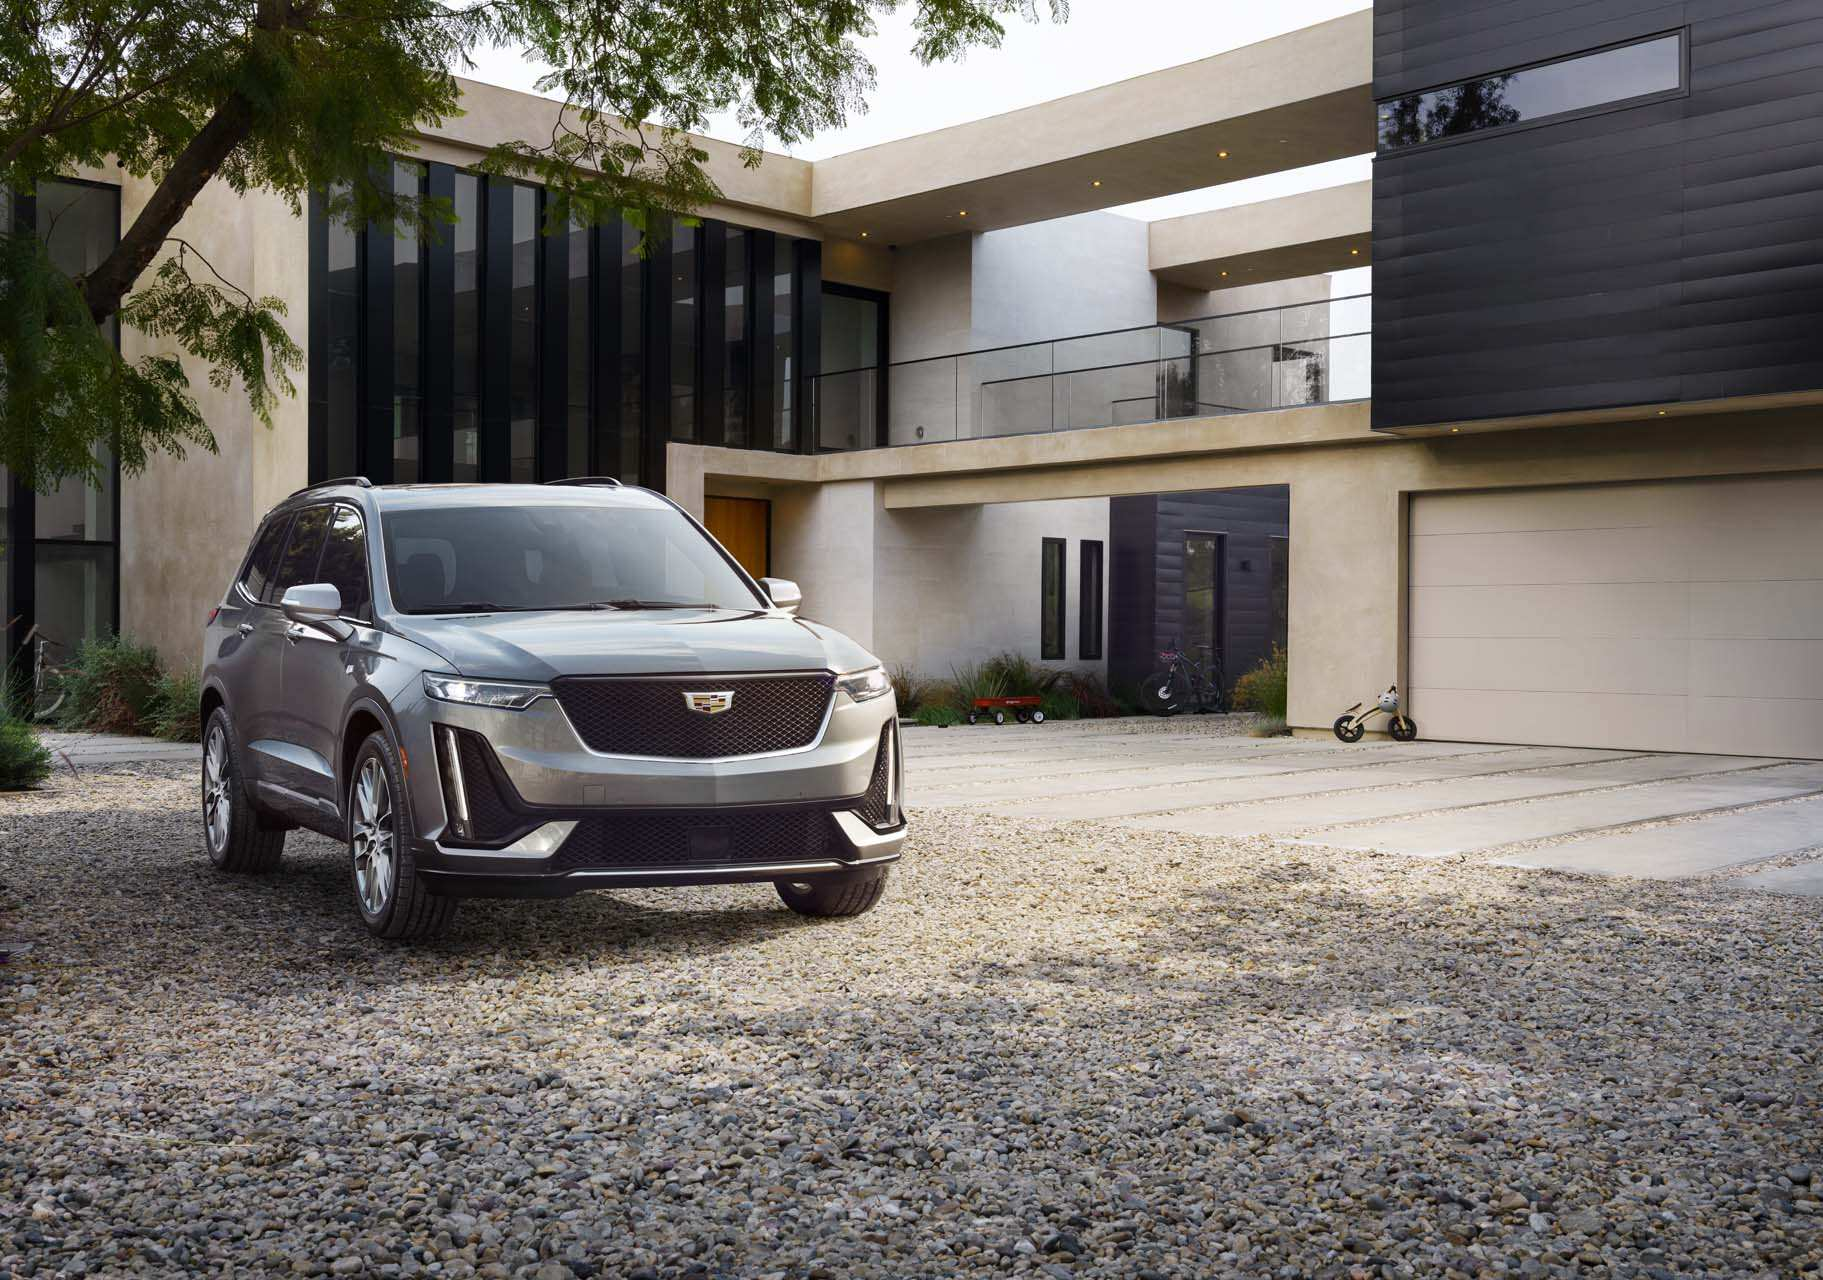 64 Great 2020 Cadillac Xt6 Length History by 2020 Cadillac Xt6 Length